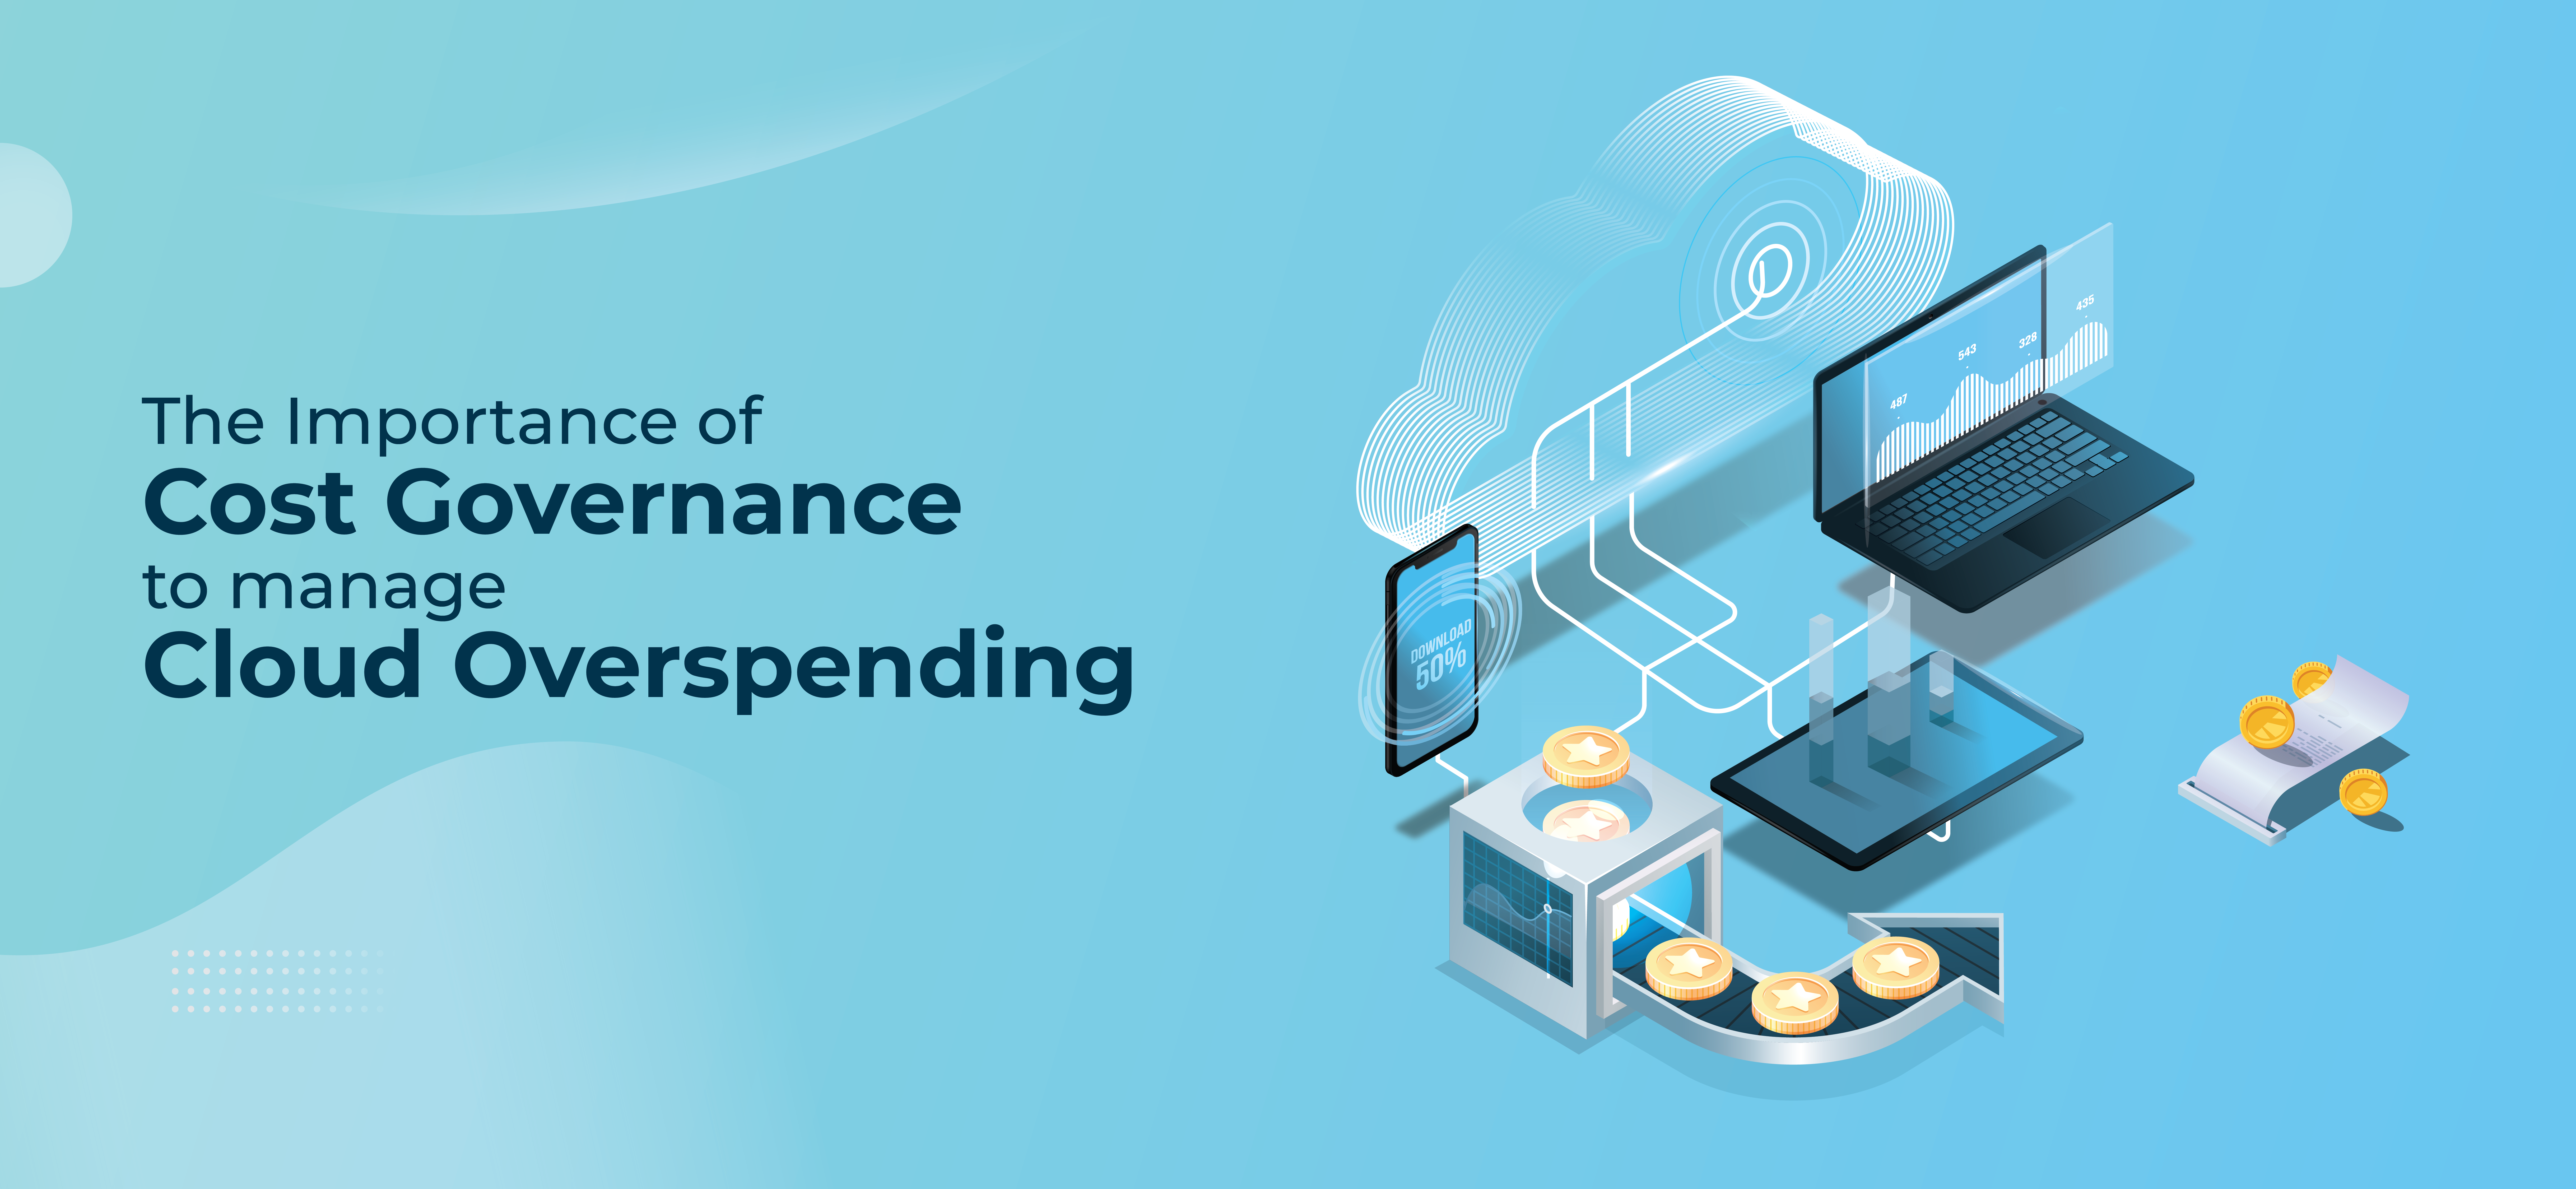 Cost Governance for Cloud Overspending